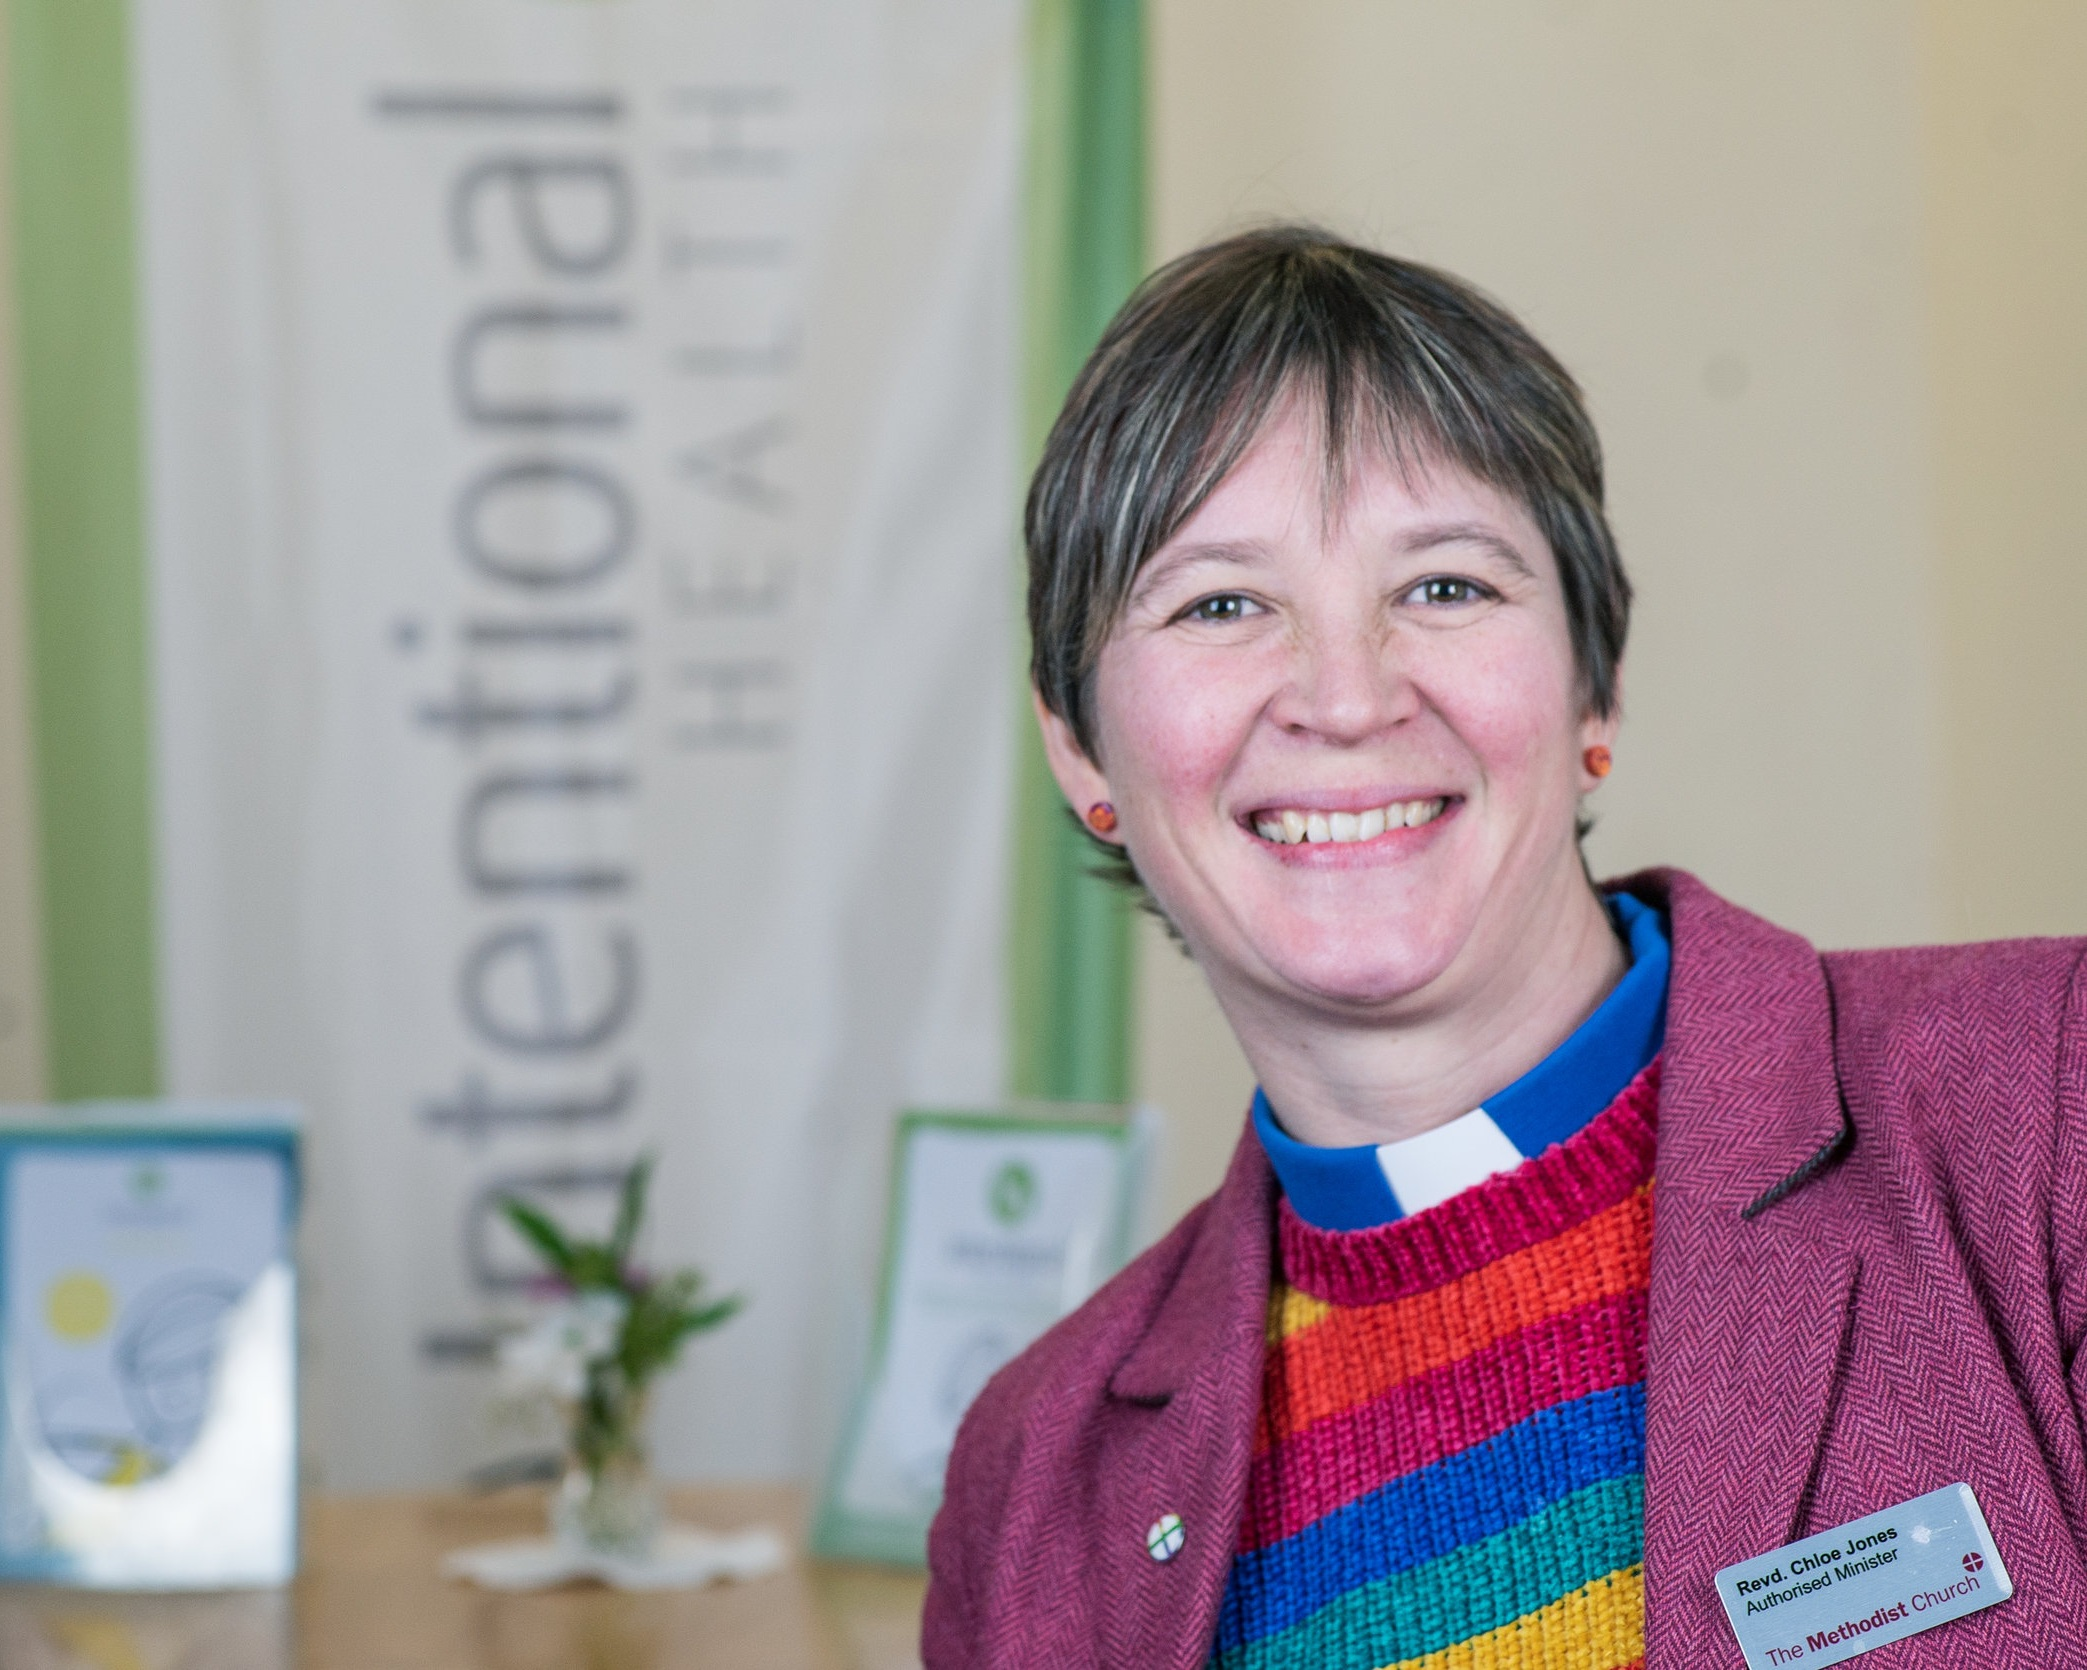 """Why the church? - """"Church isn't about getting bums on seats on a Sunday morning, it's about meeting people regardless of their background or beliefs and walking alongside them until they believe that they are both loved and loveable. Intentional Health is a way that the love of God can be demonstrated by living the basic command to love one another."""""""